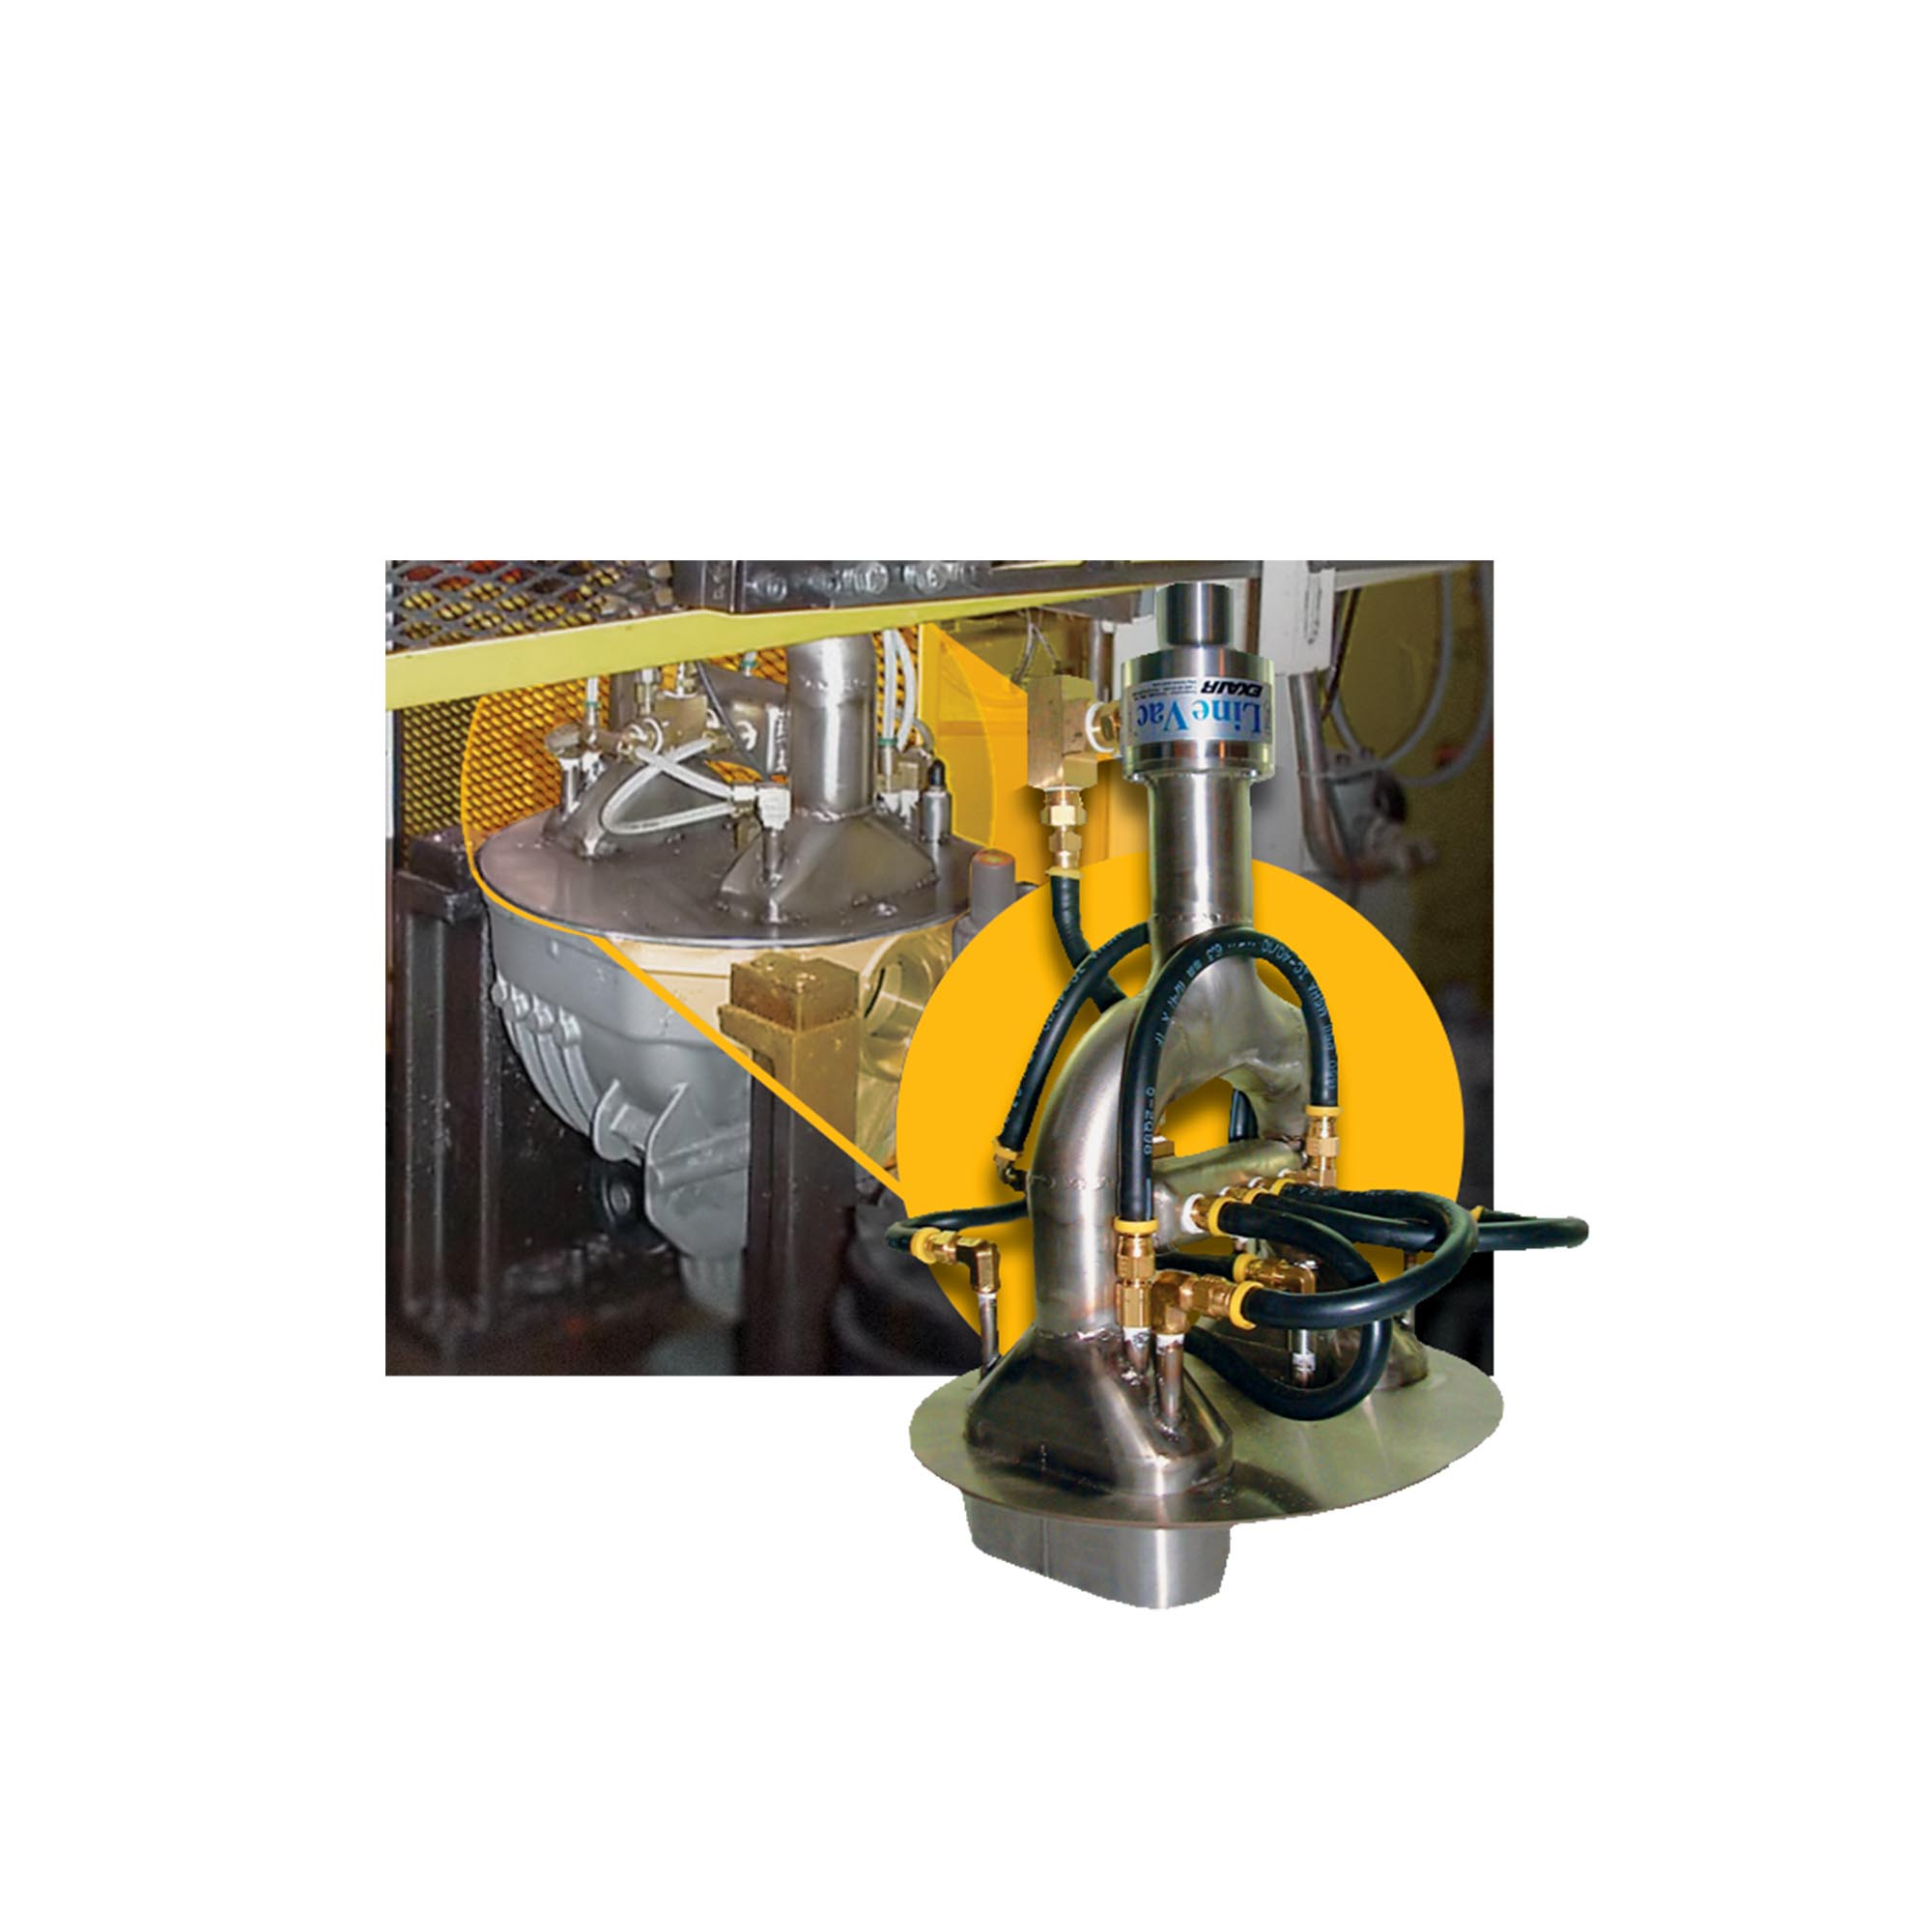 Here, a Heavy Duty Line Vac is used to vacuum chips and swarf from a differential.